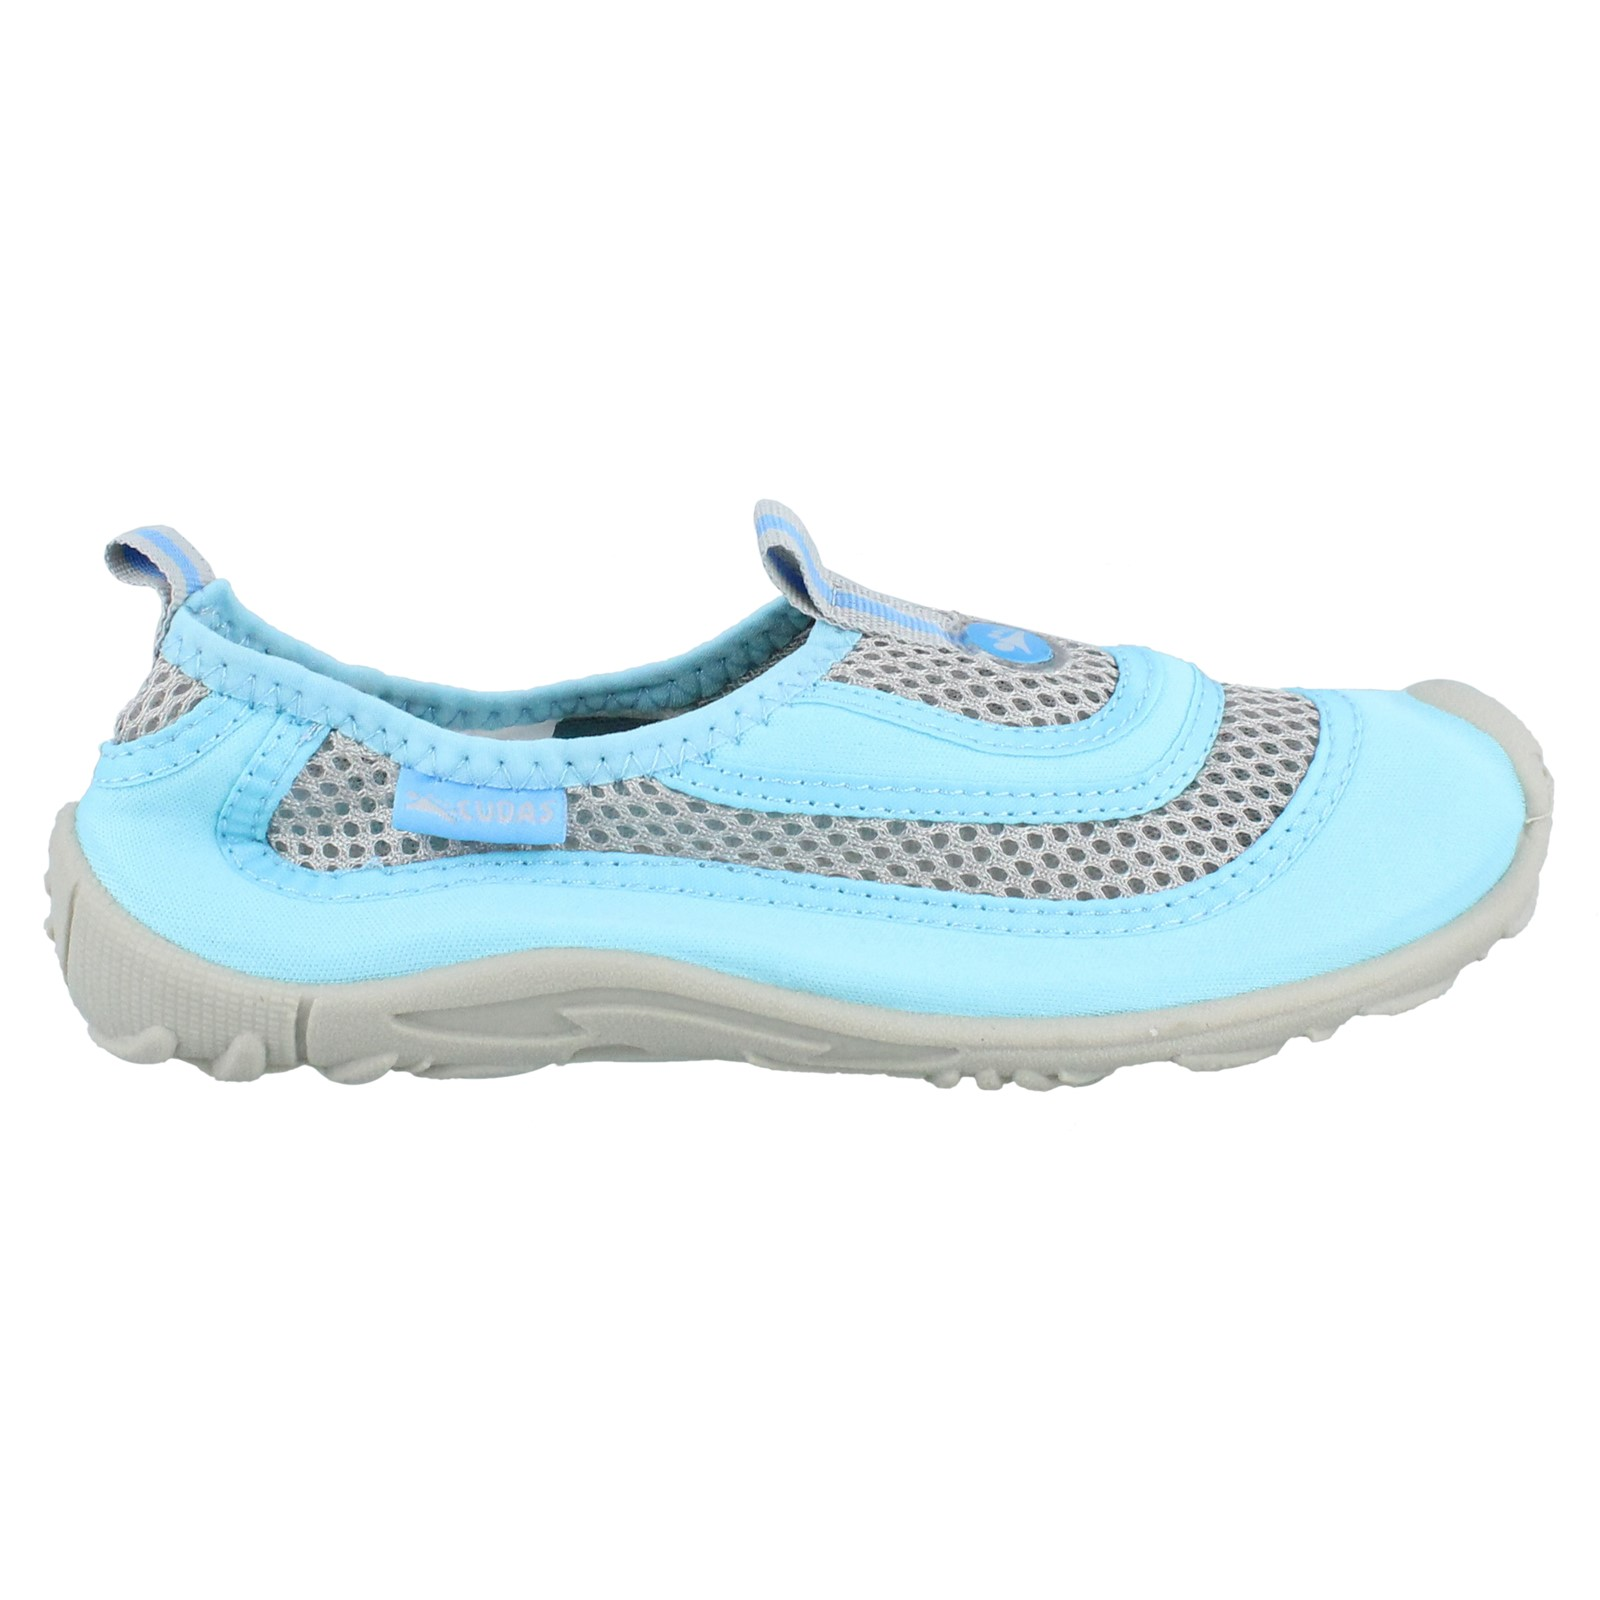 Girl's Cudas, Flatwater protective Water Shoes